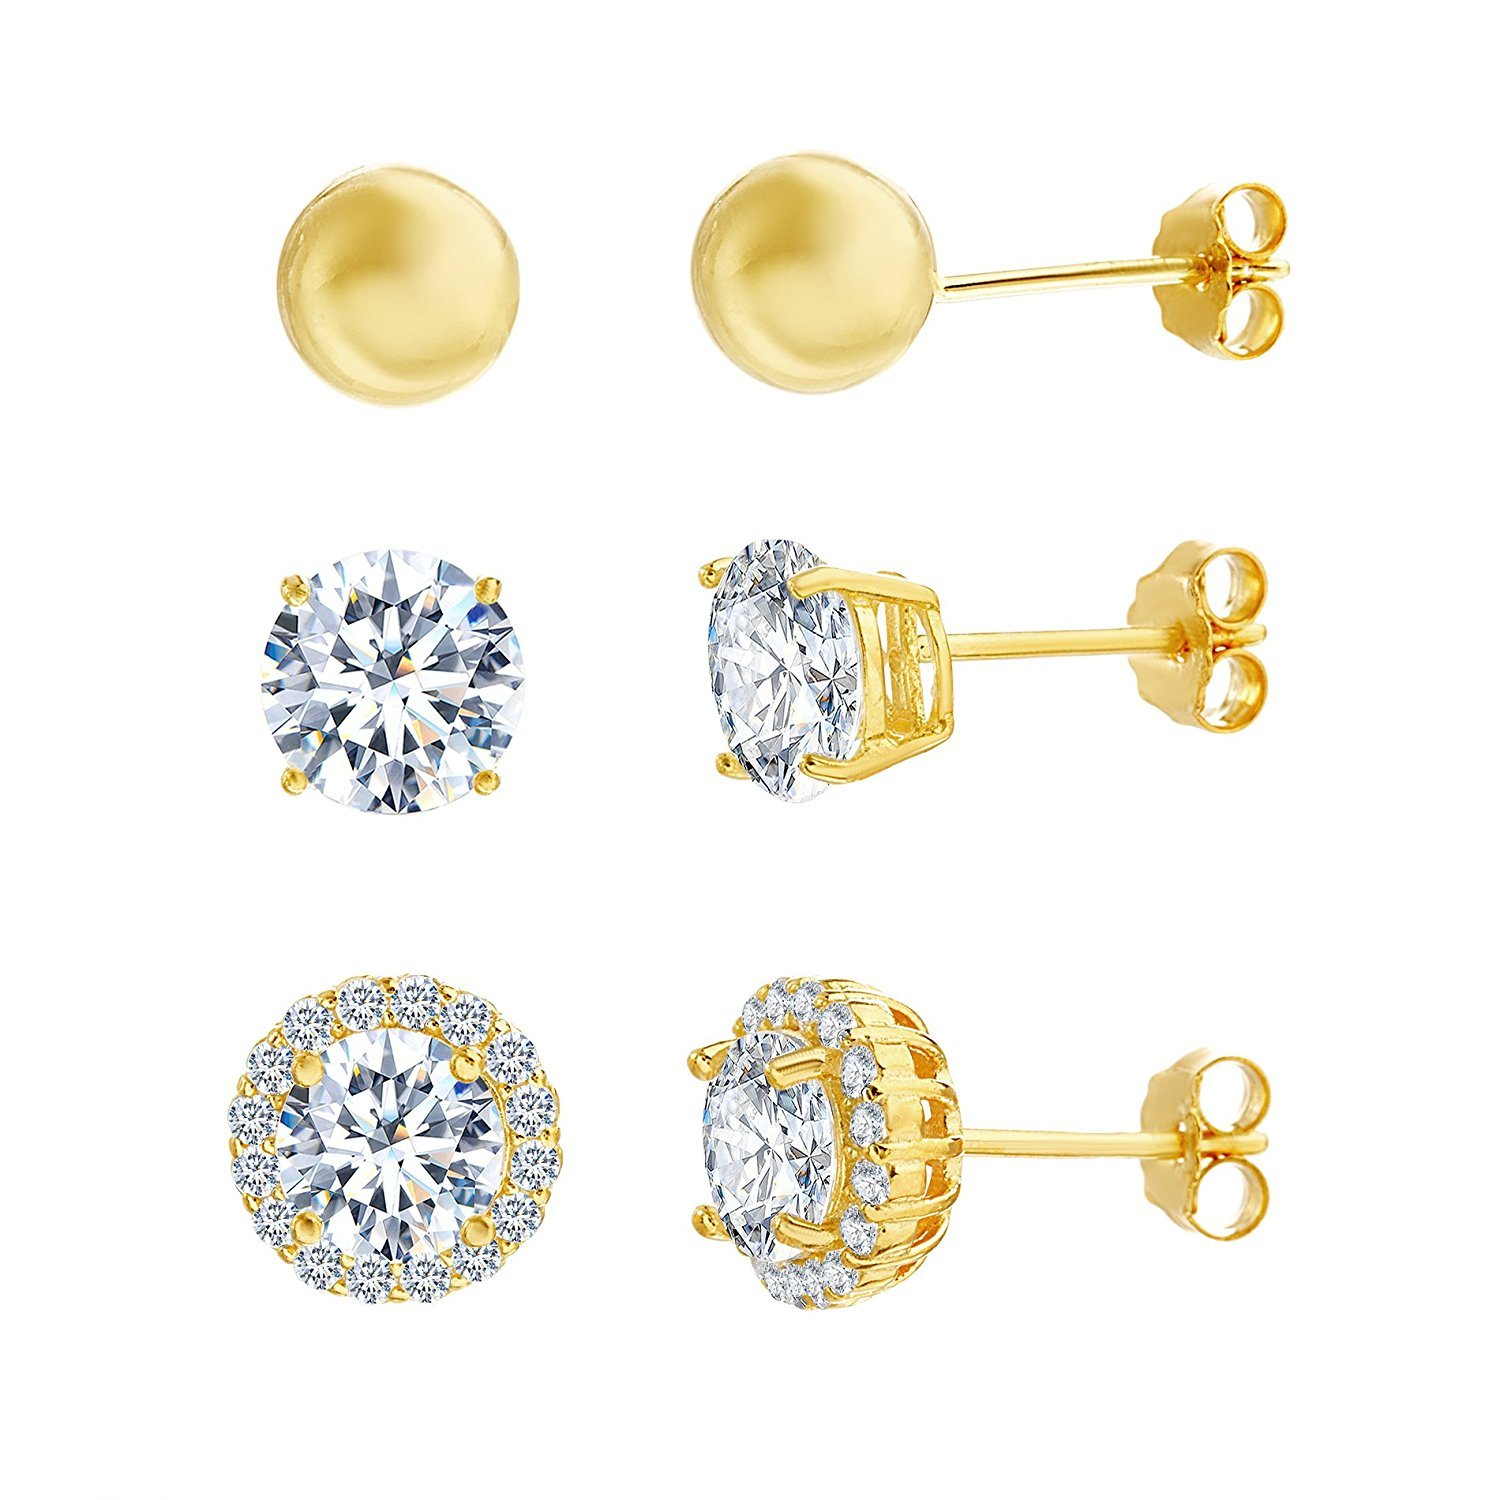 Lesa Michele Cubic Zirconia 3 pair Stud Earring Set in Yellow Gold over Sterling Silver